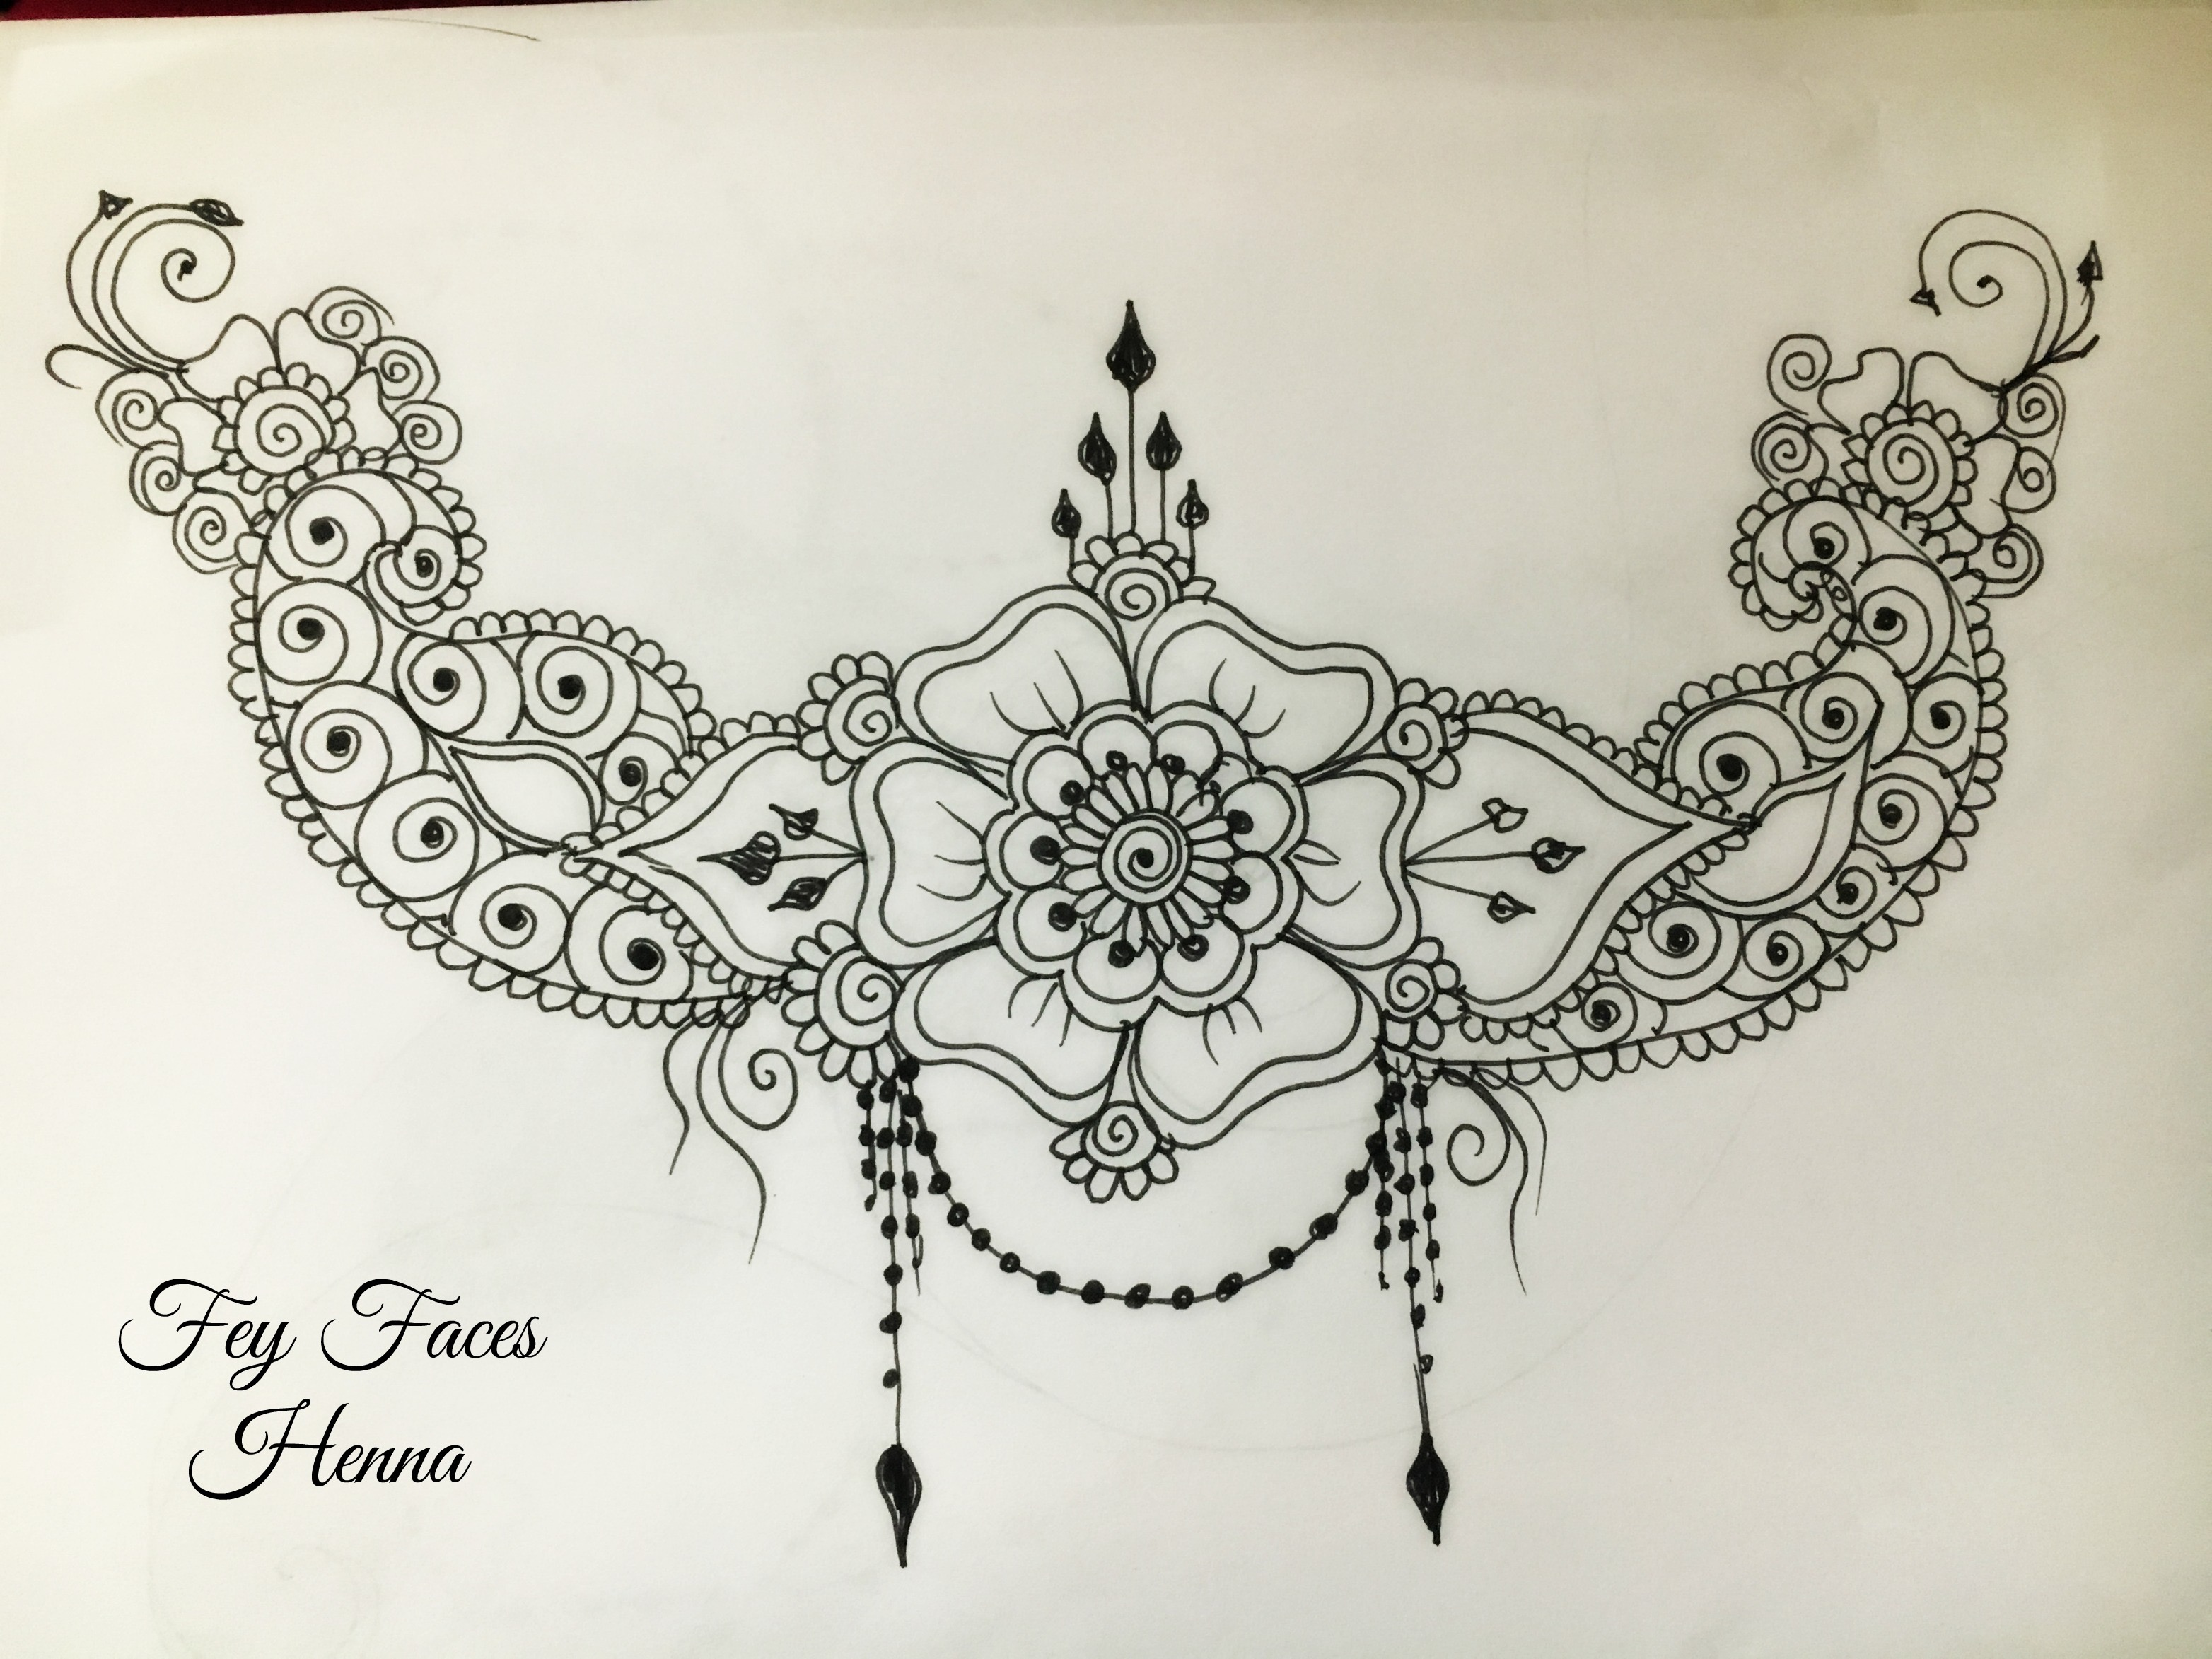 Henna design by Fey Faces Oxfordshir